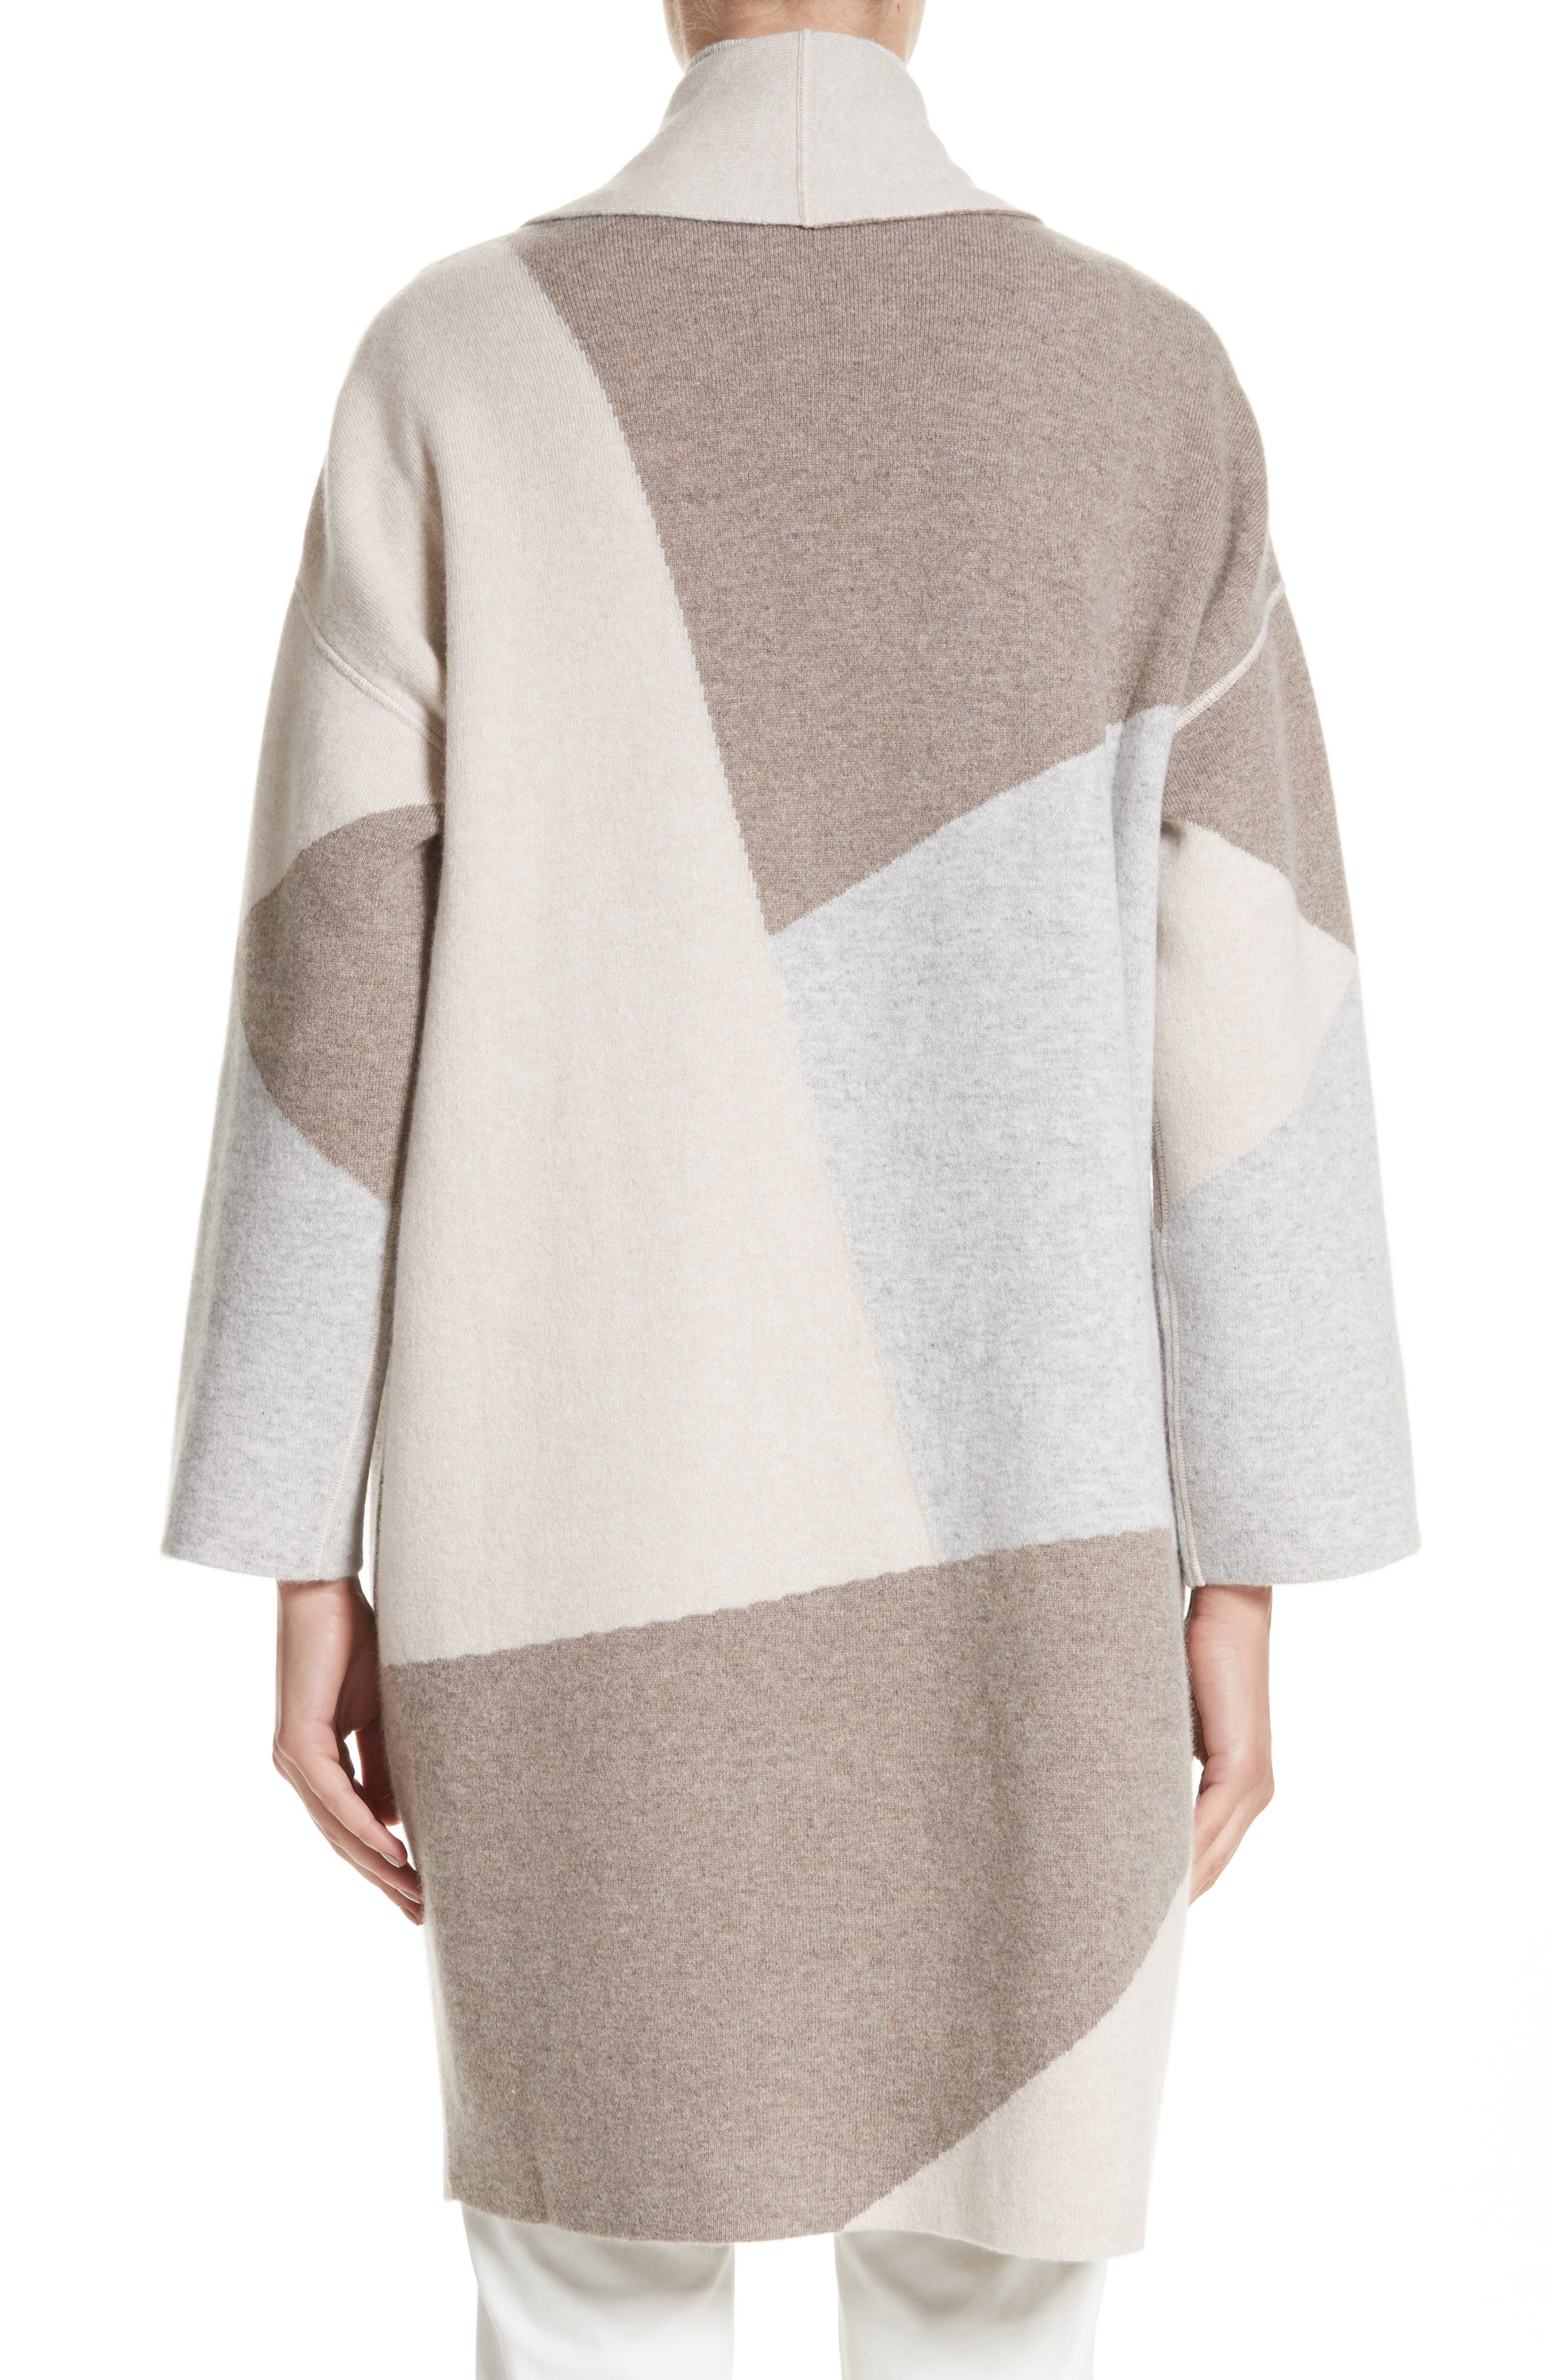 Stretch Cashmere Reversible Felted Colorblock Cardigan,                             Alternate thumbnail 3, color,                             020